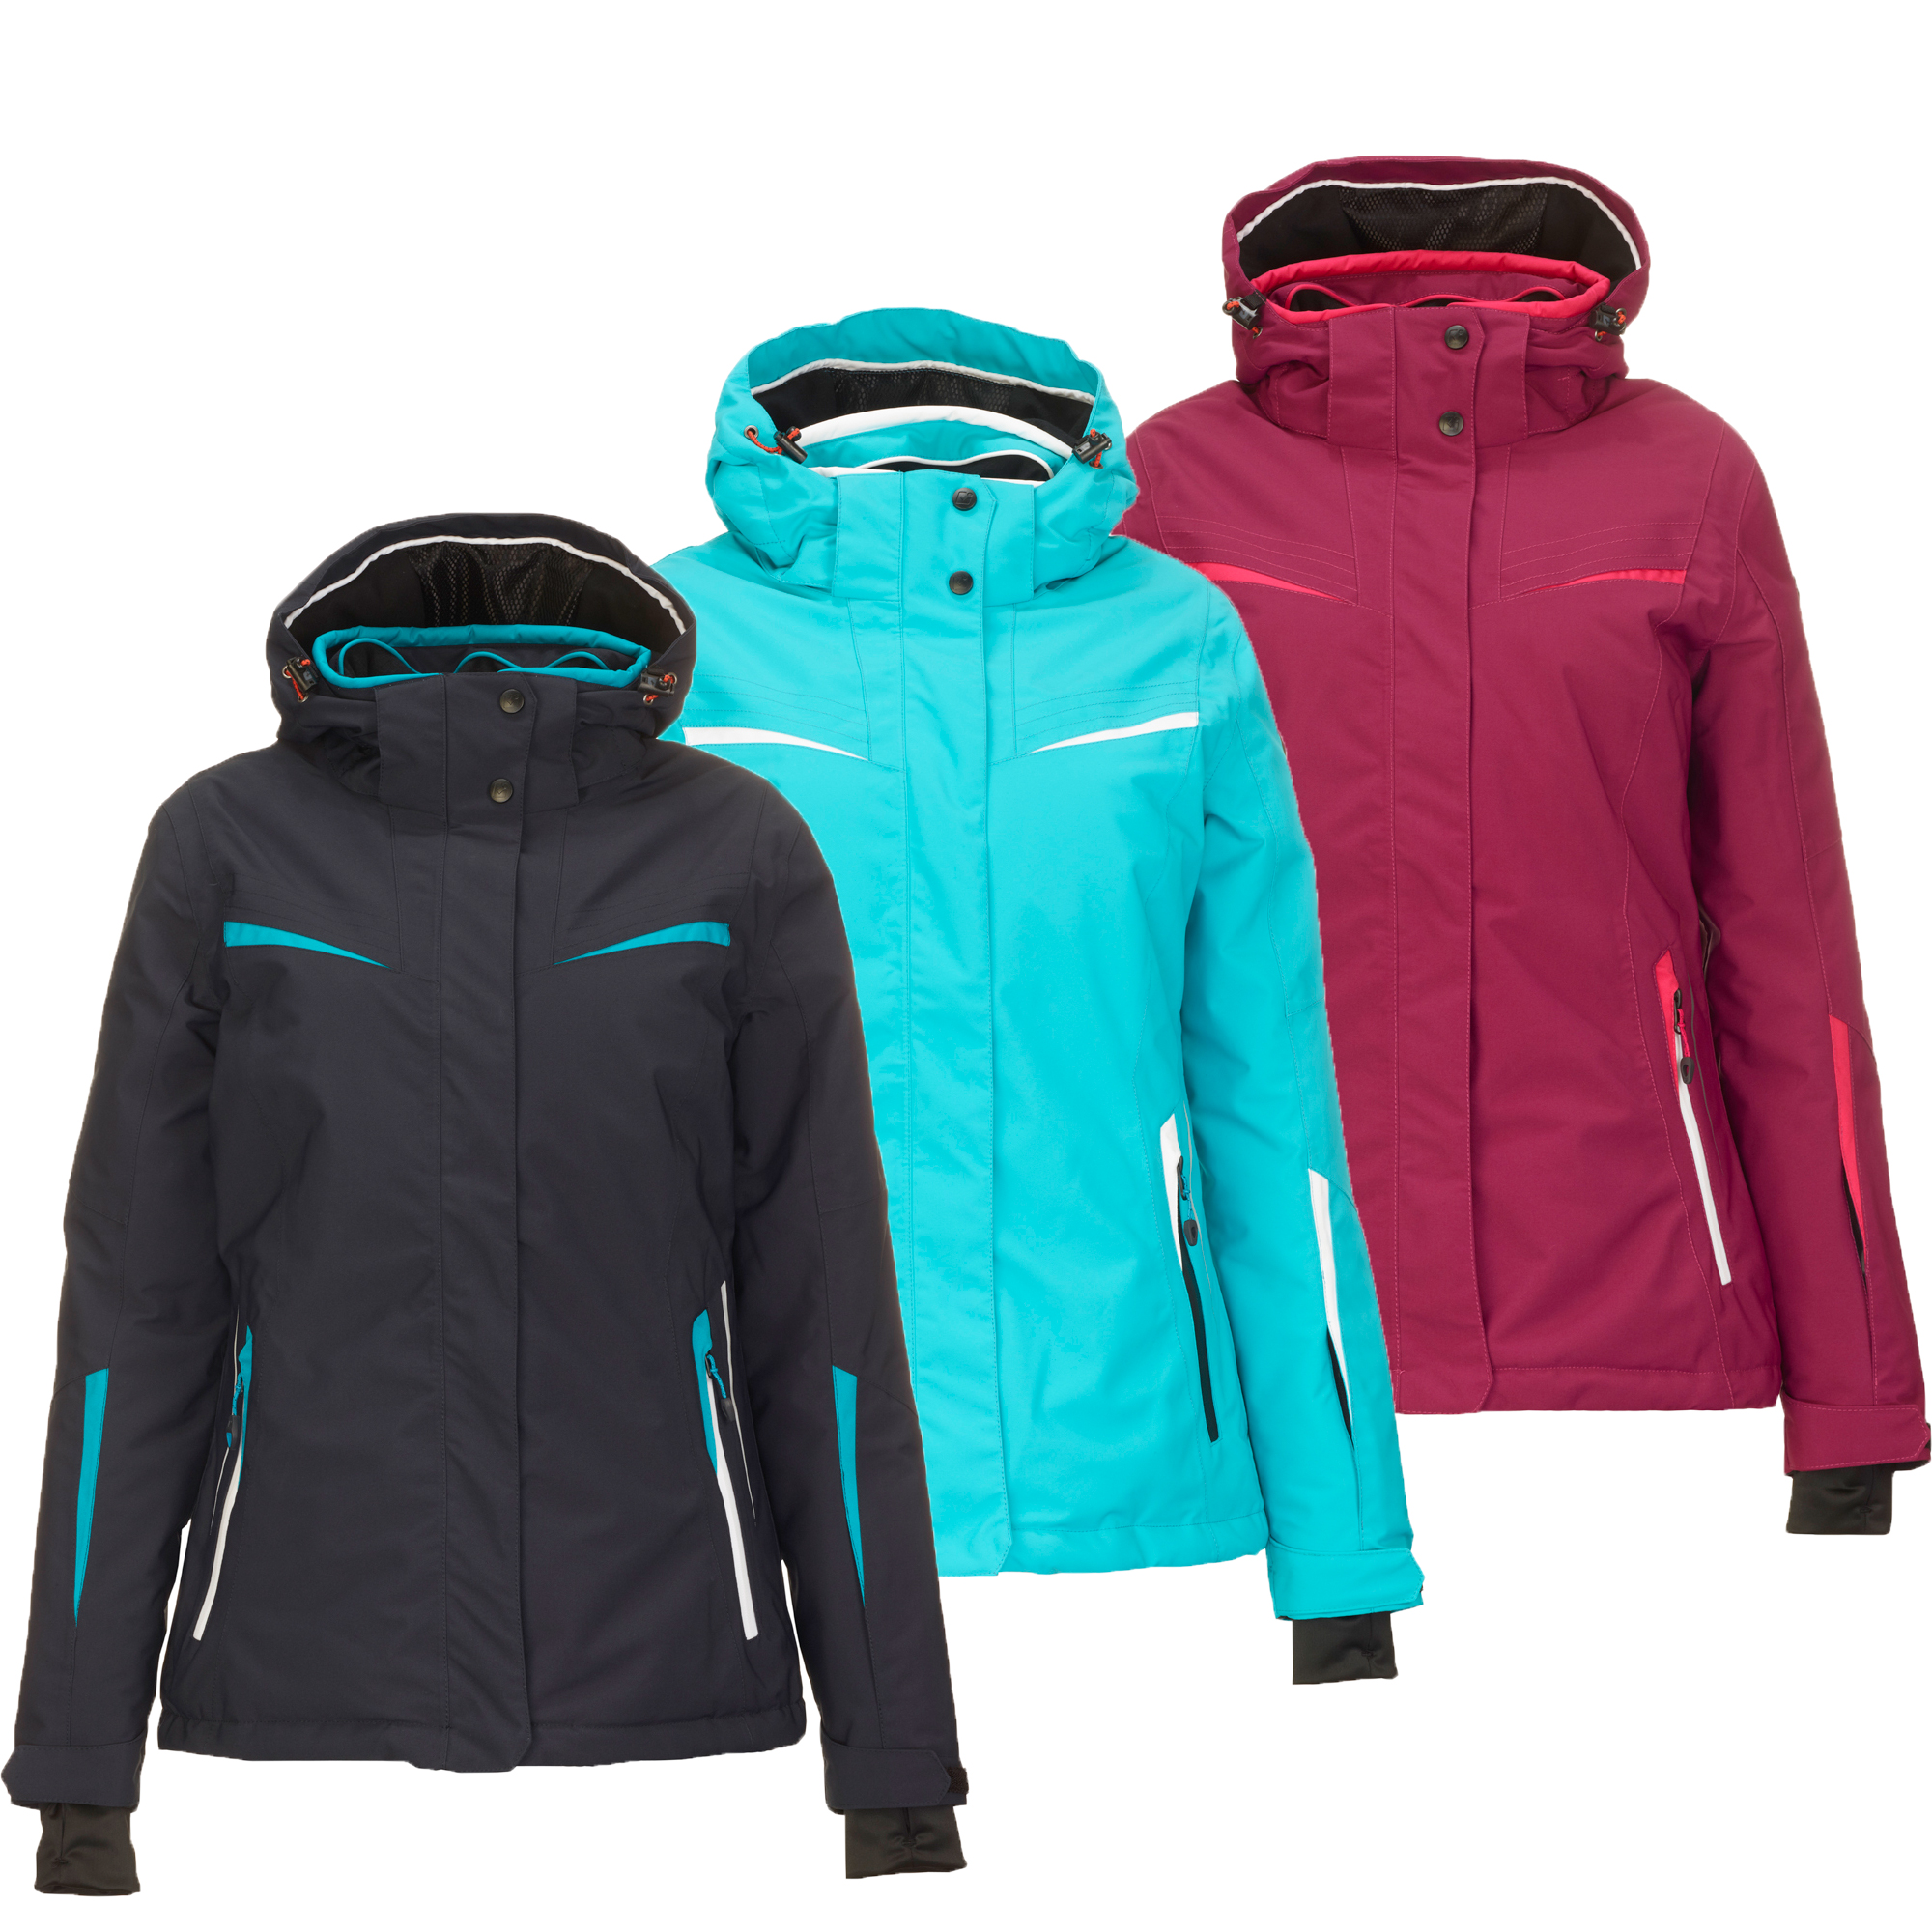 Details about Killtec Carol Ladies Ski Jacket Winter Jacket Functional Jacket show original title